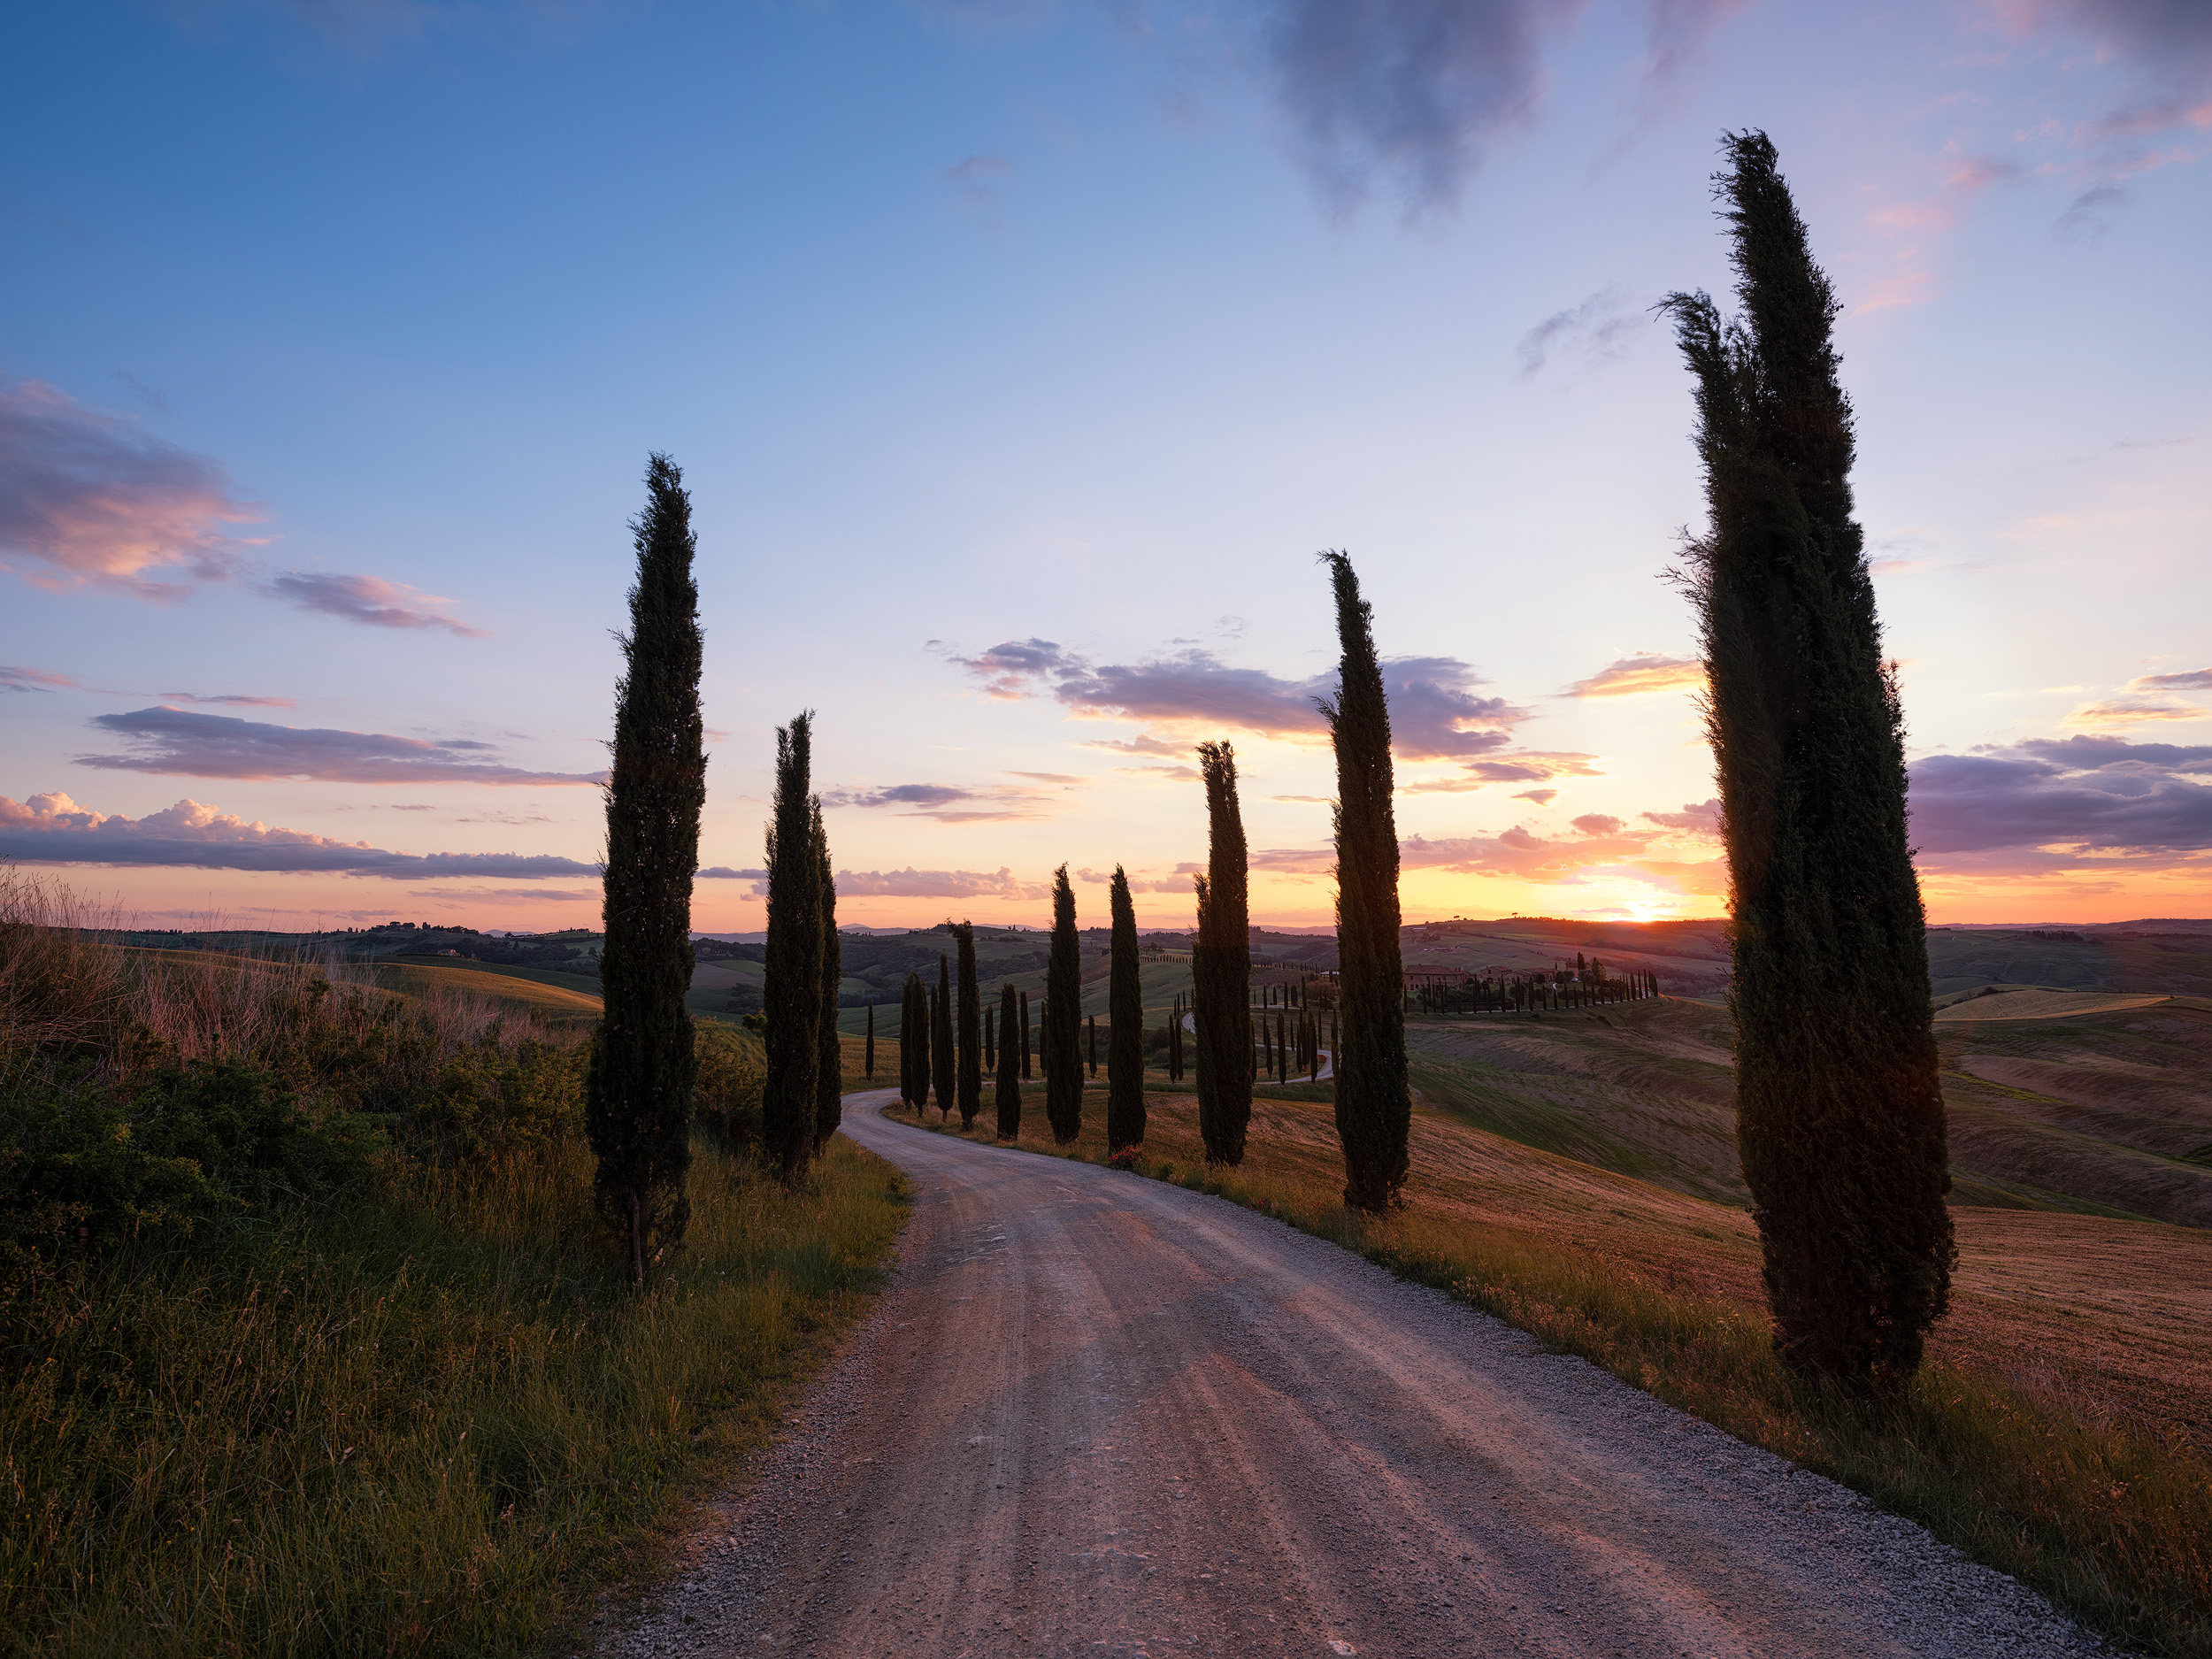 Baccaleno   A winding, cypress lined road across rolling hills to a stone farmhouse. It can only be Tuscany. This image was taken in Crete Senesi, south of Siena.